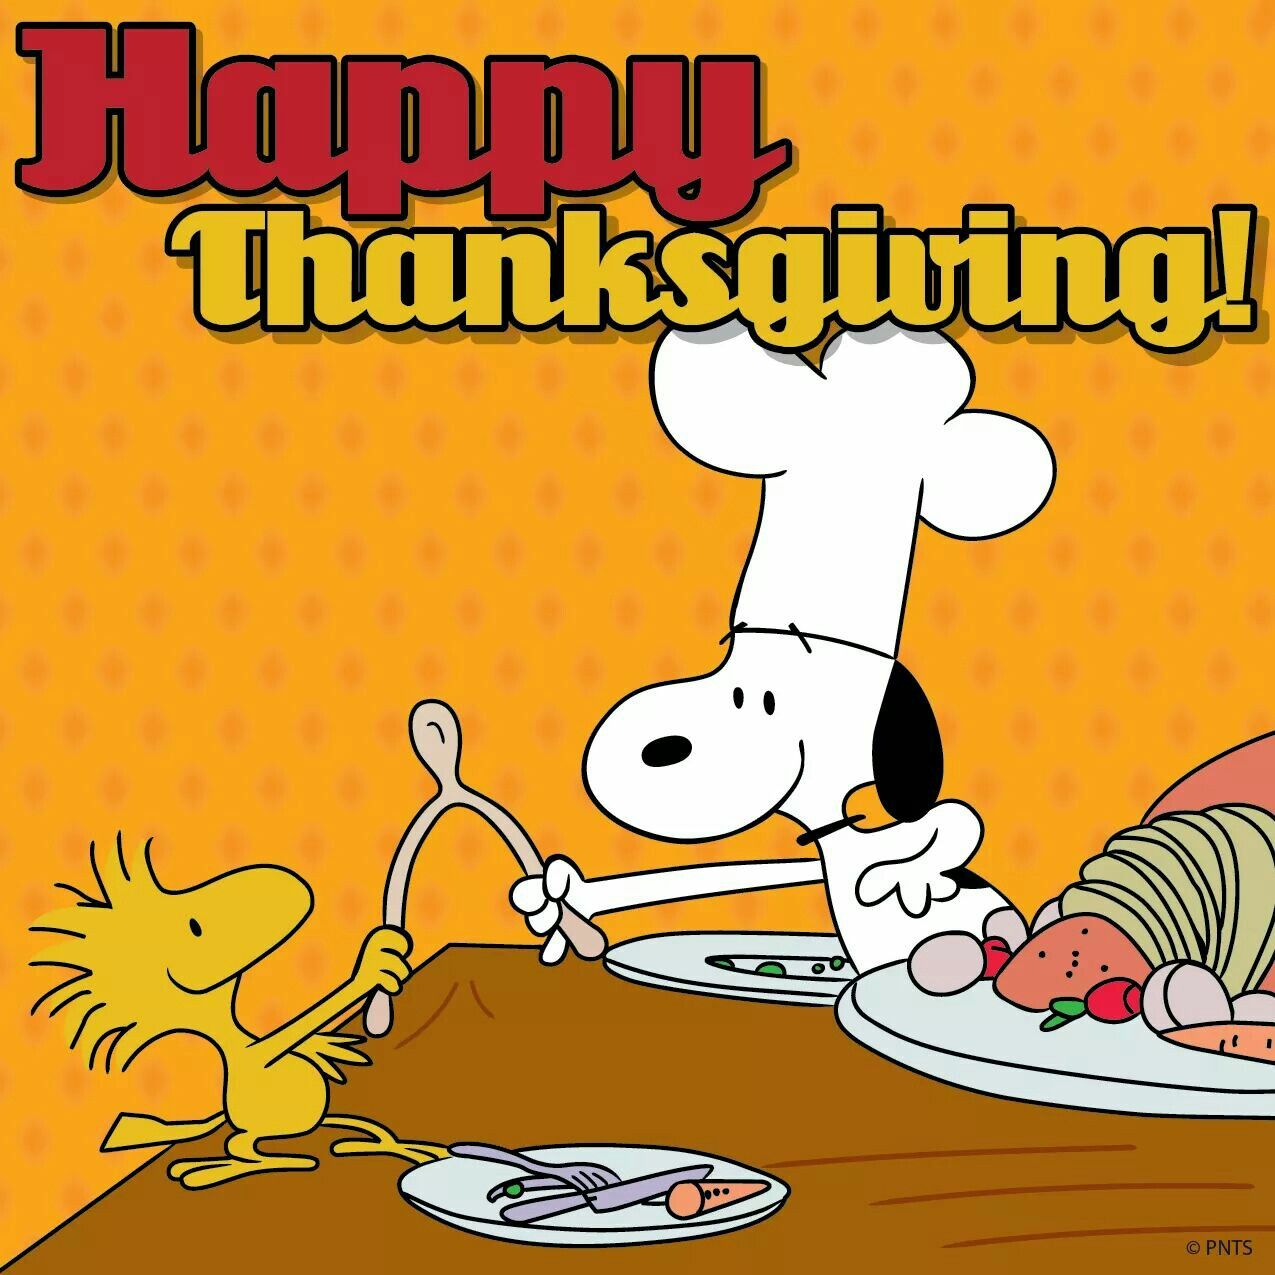 Snoopy Thanksgiving Happy thanksgiving images, Happy